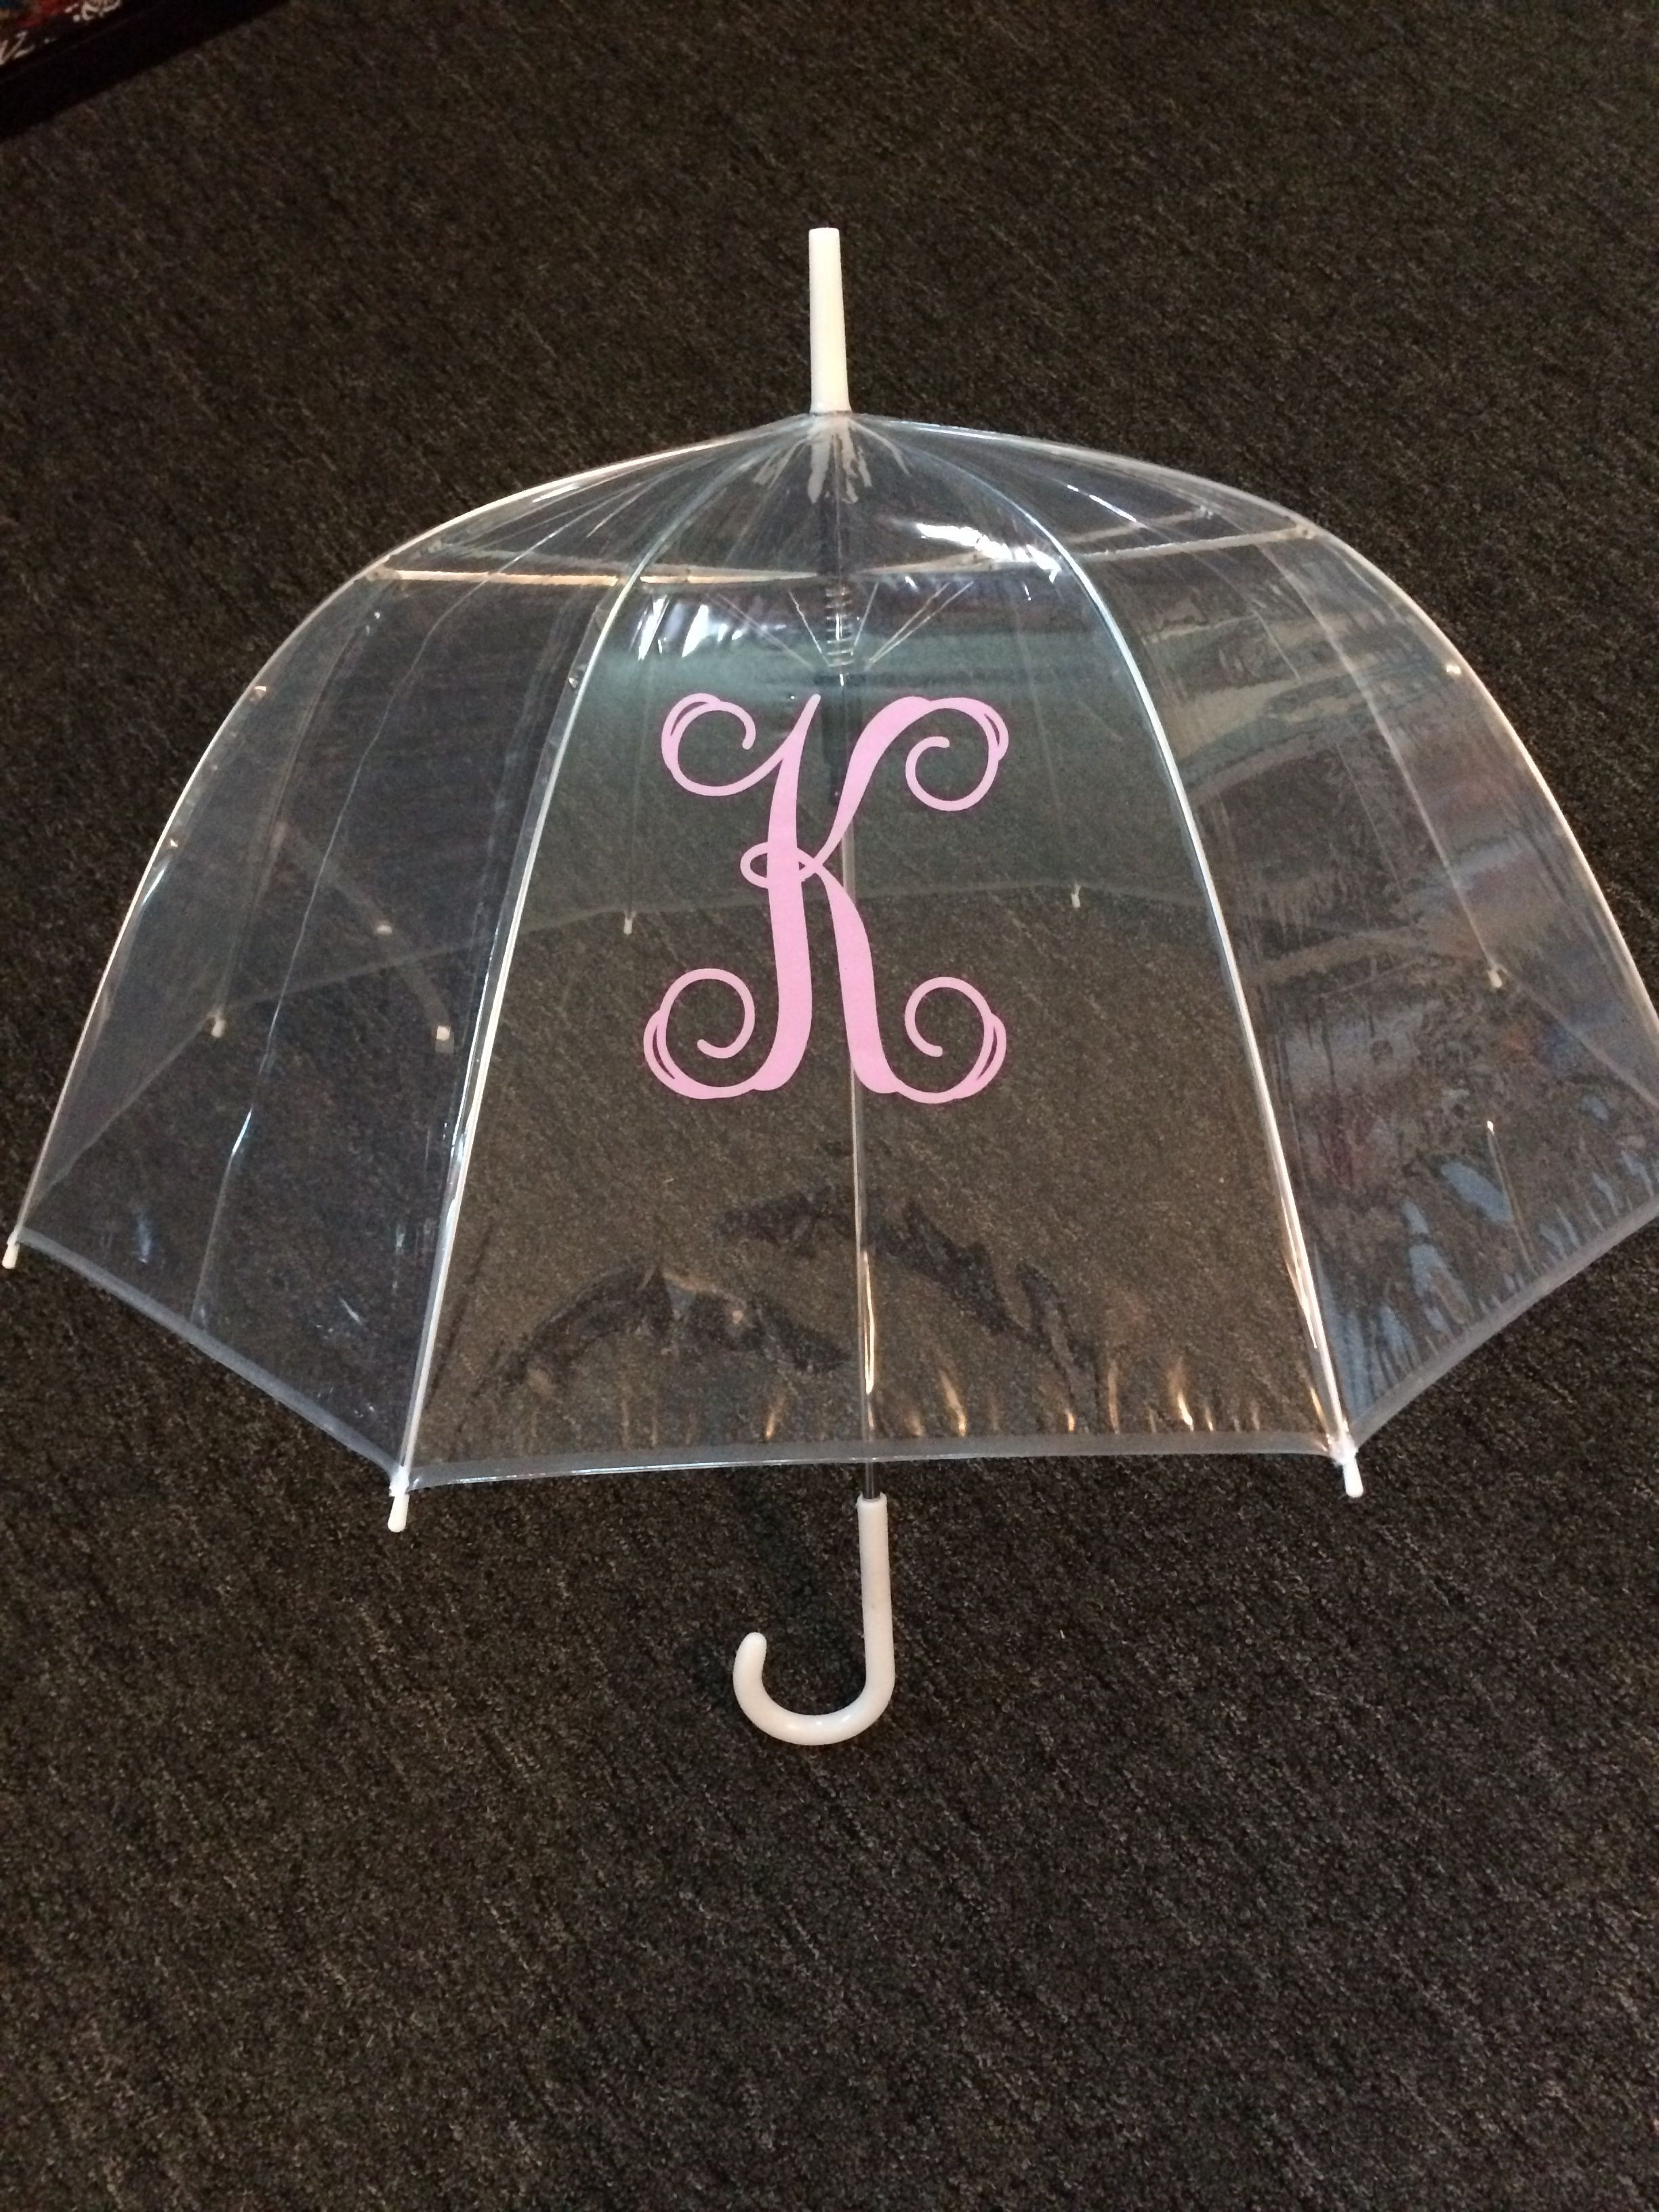 Vinyl monogram clear umbrella #clearumbrella Vinyl monogram clear umbrella #clearumbrella Vinyl monogram clear umbrella #clearumbrella Vinyl monogram clear umbrella #clearumbrella Vinyl monogram clear umbrella #clearumbrella Vinyl monogram clear umbrella #clearumbrella Vinyl monogram clear umbrella #clearumbrella Vinyl monogram clear umbrella #clearumbrella